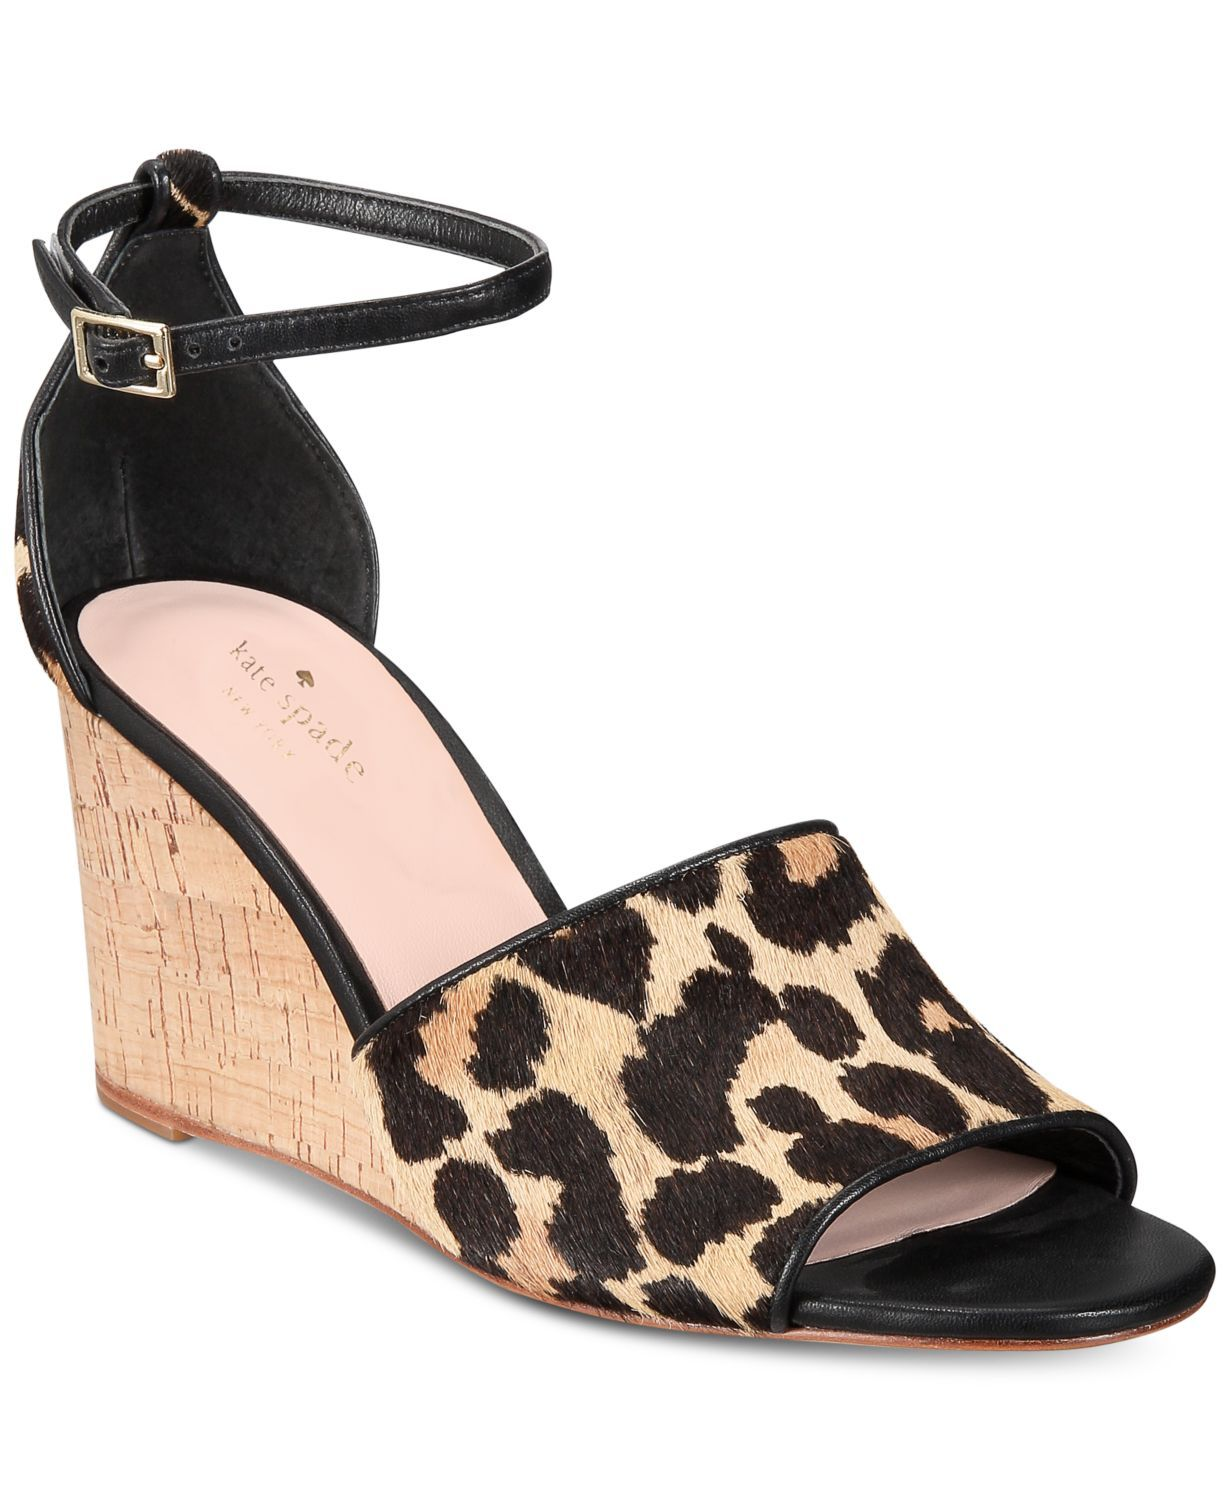 Leopard Ankle Straps kate spade new york macys.com $198.00 SHOP NOW The magical thing about leopard is that it's flirty, yet a print your grandmother would happily wear. Add a spotted touch for a bit of flair (great if your work wardrobe tends to stick to a rotation of black pieces).